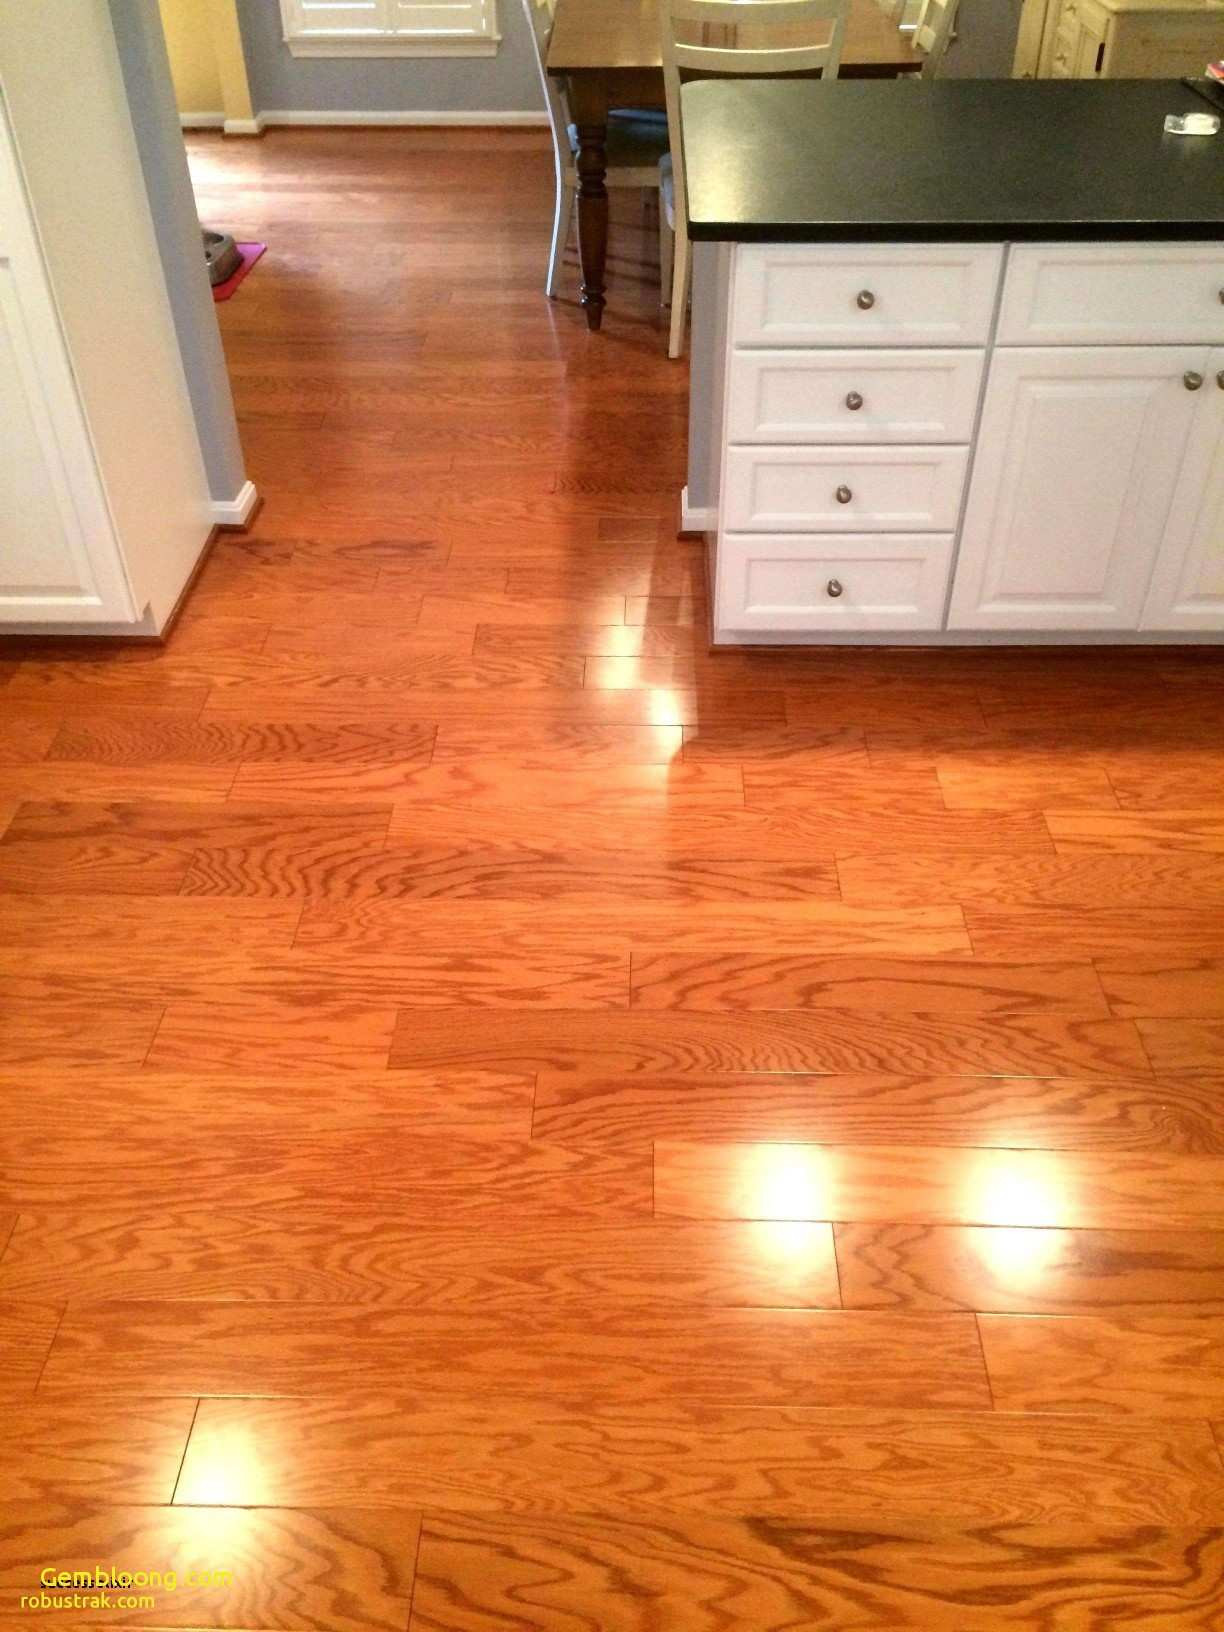 can i put hardwood floor in basement of wood for floors facesinnature throughout hardwood floors in the kitchen fresh where to buy hardwood flooring inspirational 0d grace place barnegat